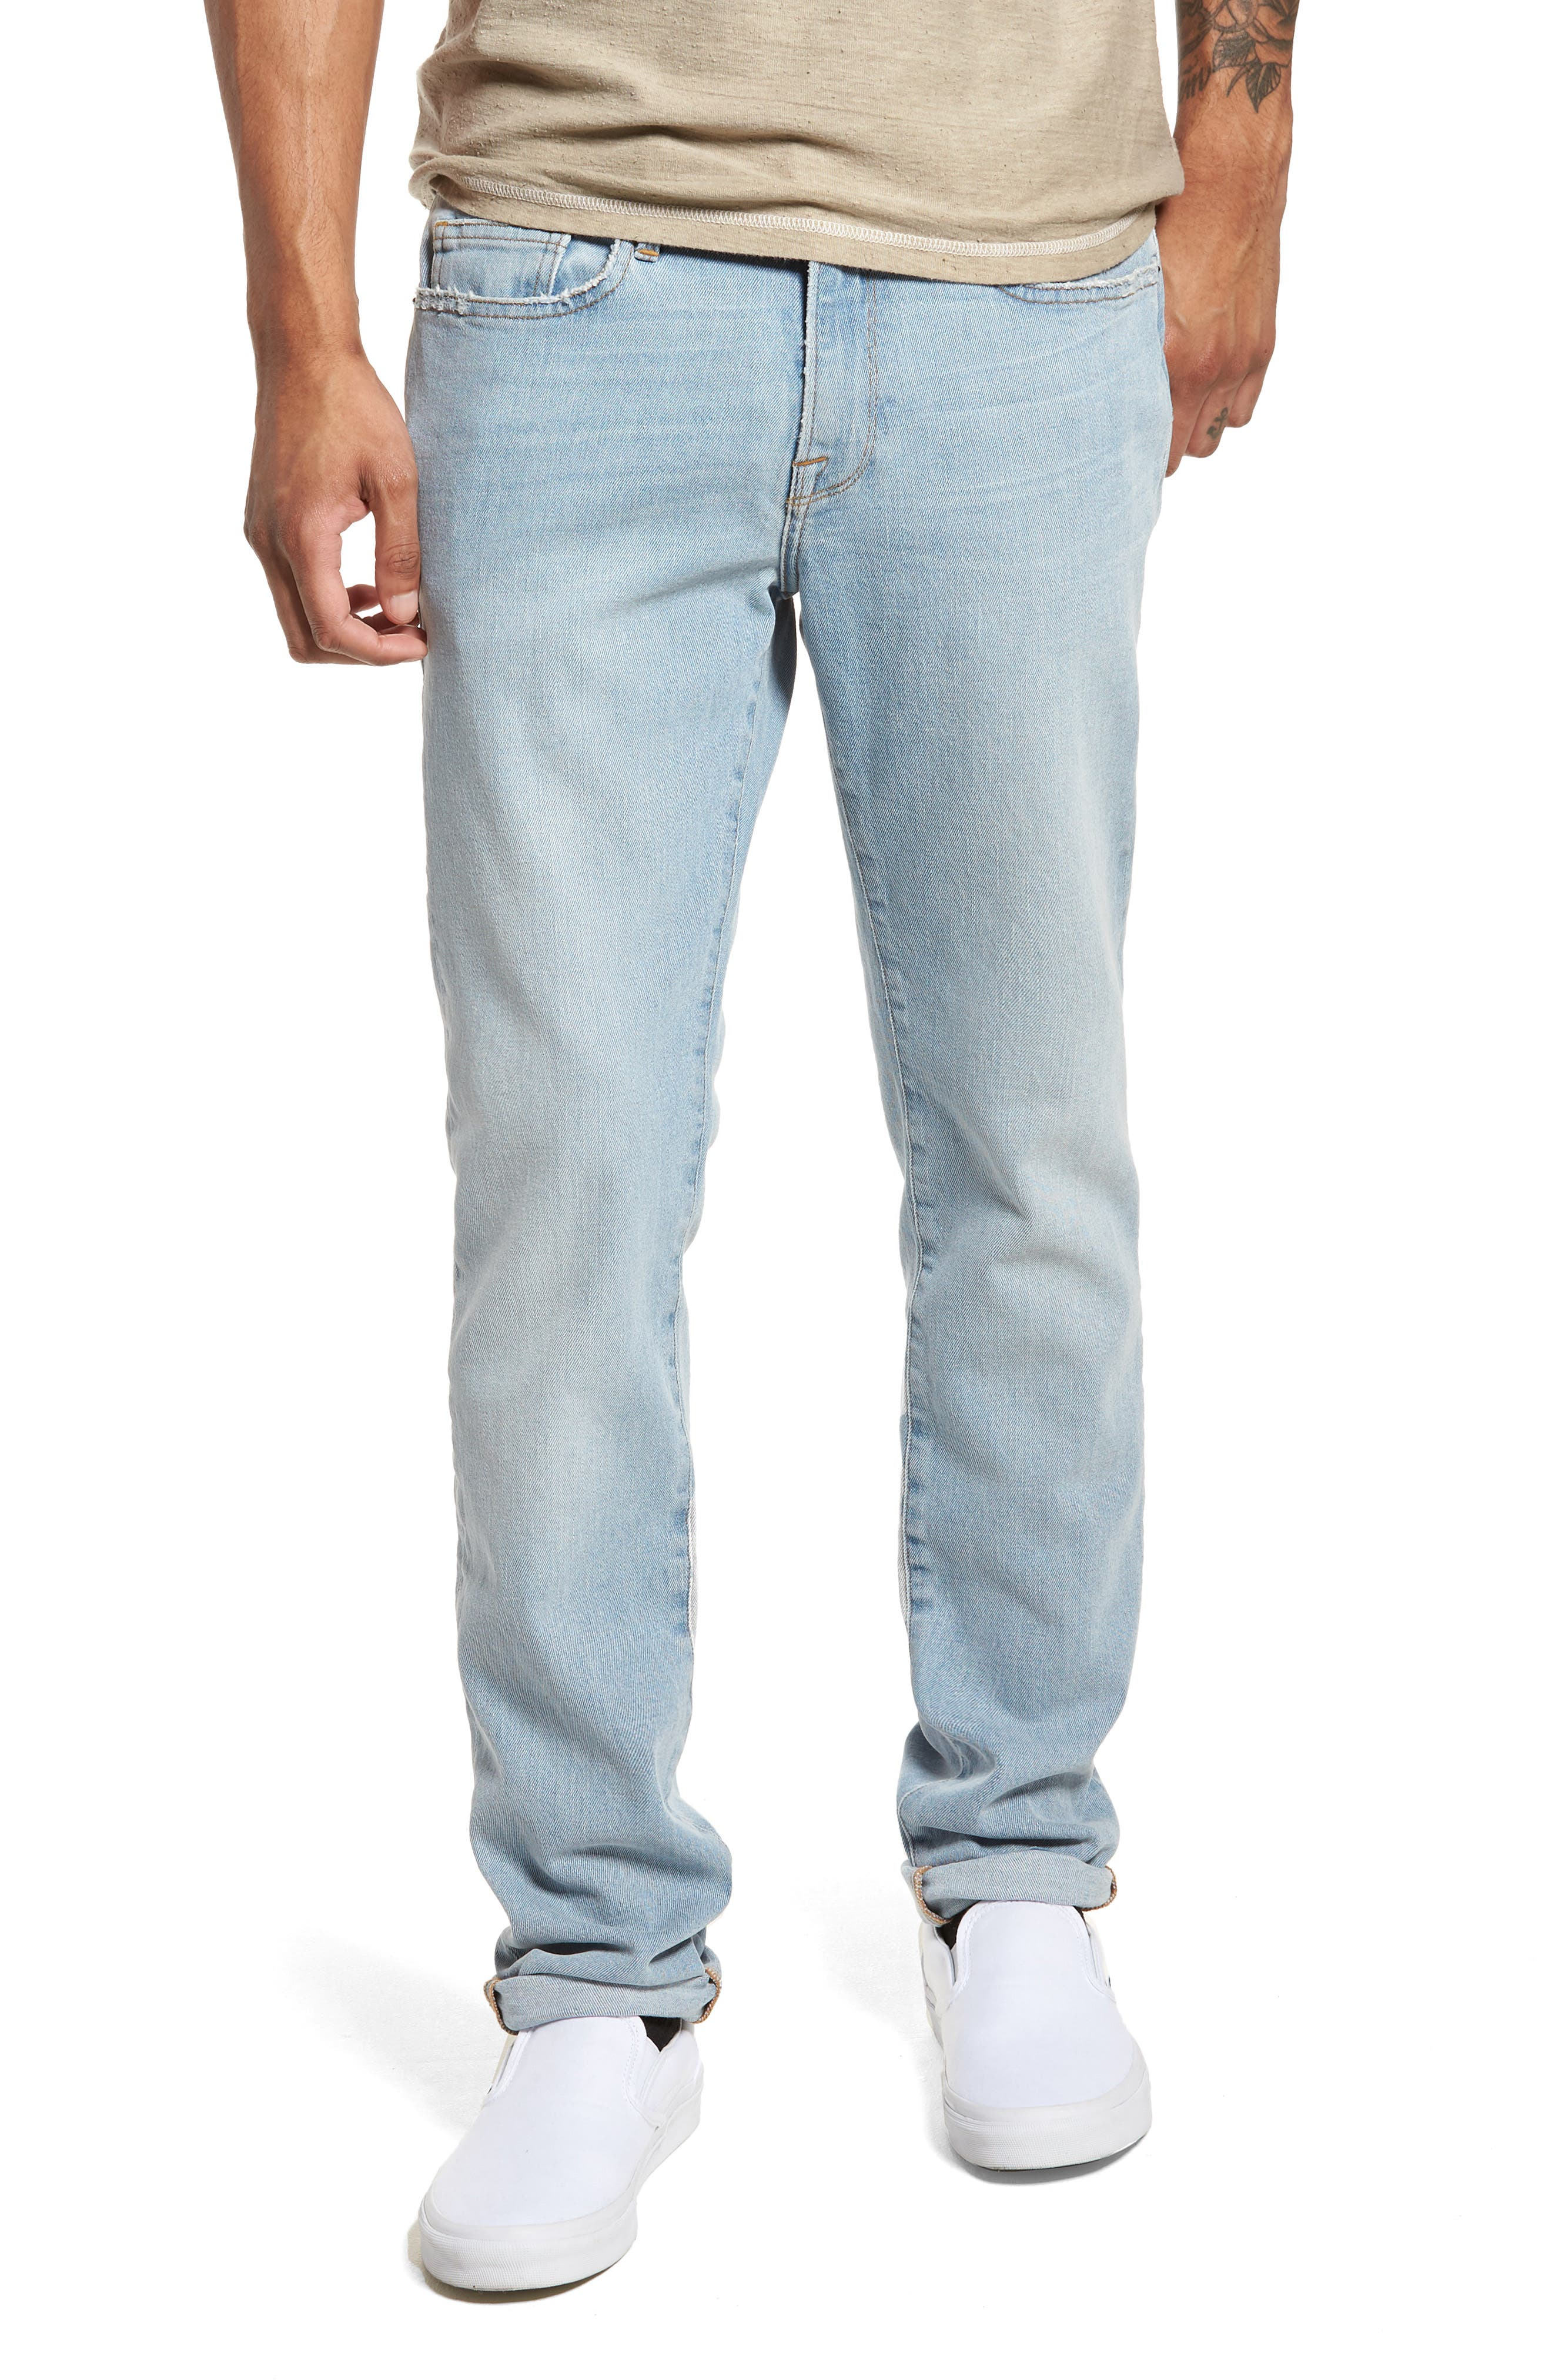 L'Homme Skinny Fit Jeans,                         Main,                         color, 450